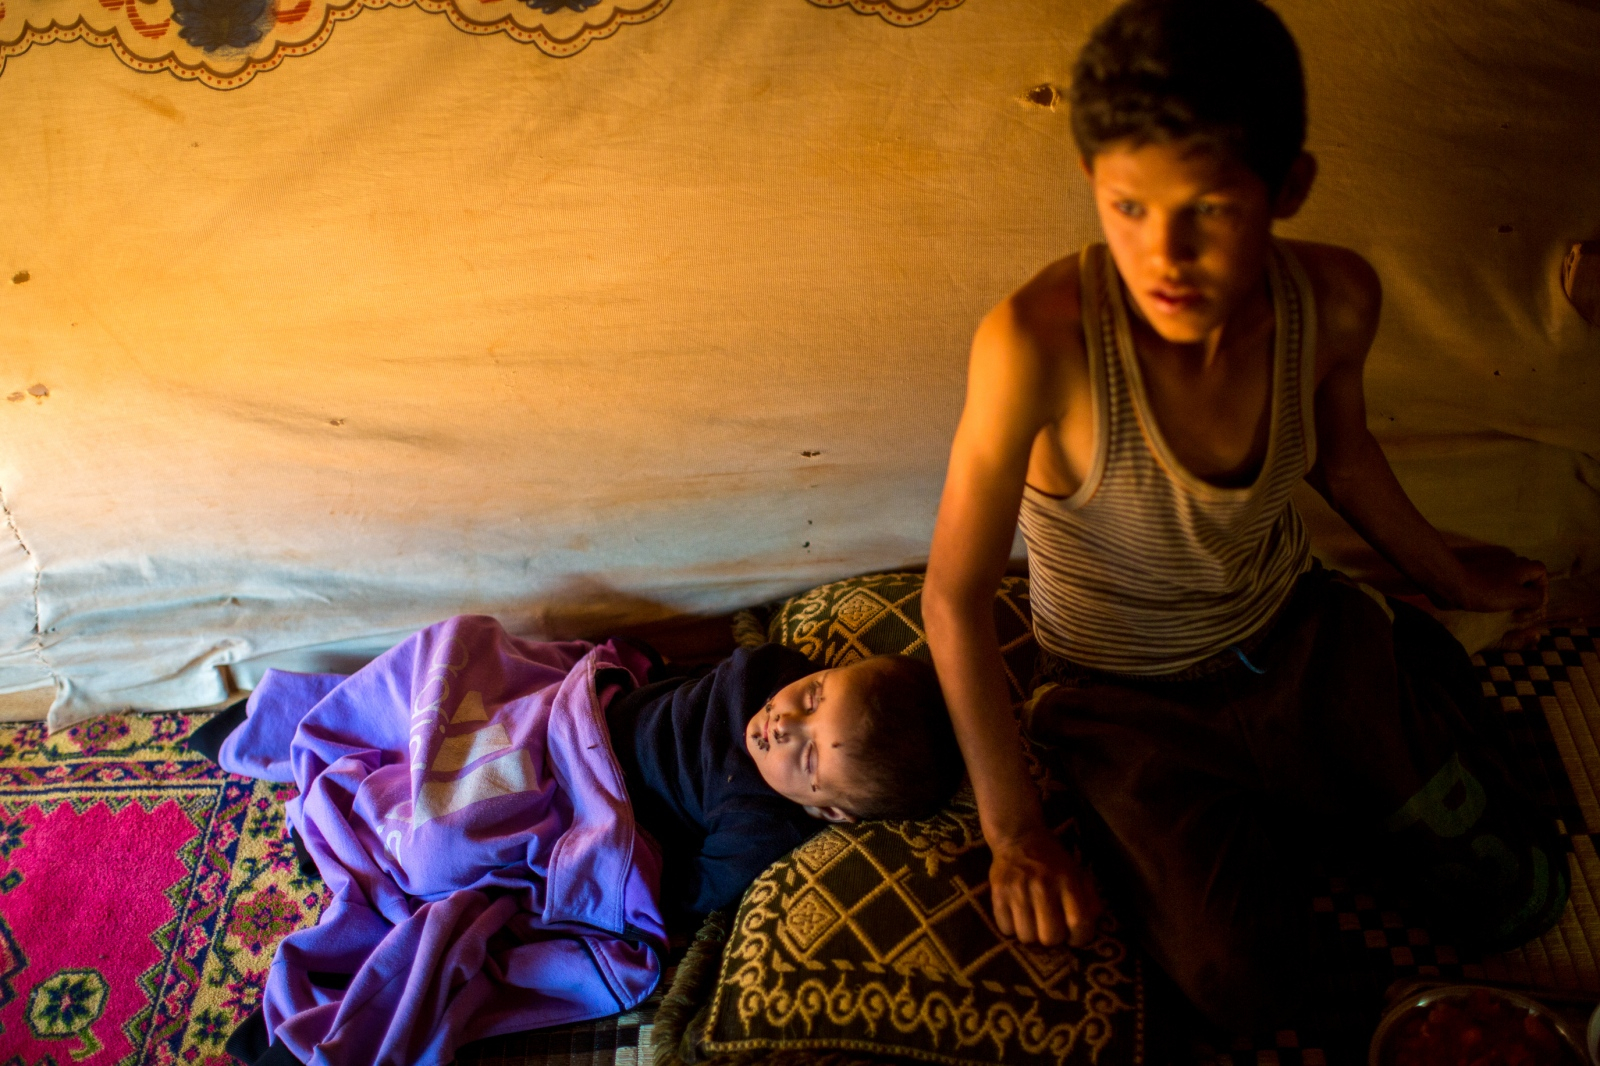 Bekaa Valley, LEBANON, September 5, 2014: Syrian refugee Jassem, 12, watches over his little brother, 3, as he sleeps in their tent in an informal settlement in Lebanon's Bekaa Valley. Jassem and his parents fled Syria in late 2011. They have been living in makeshift shelters ever since. The Lebanese government has refused to allow traditional refugee camps for Syrians in Lebanon, so many live in temporary shelters across the country.